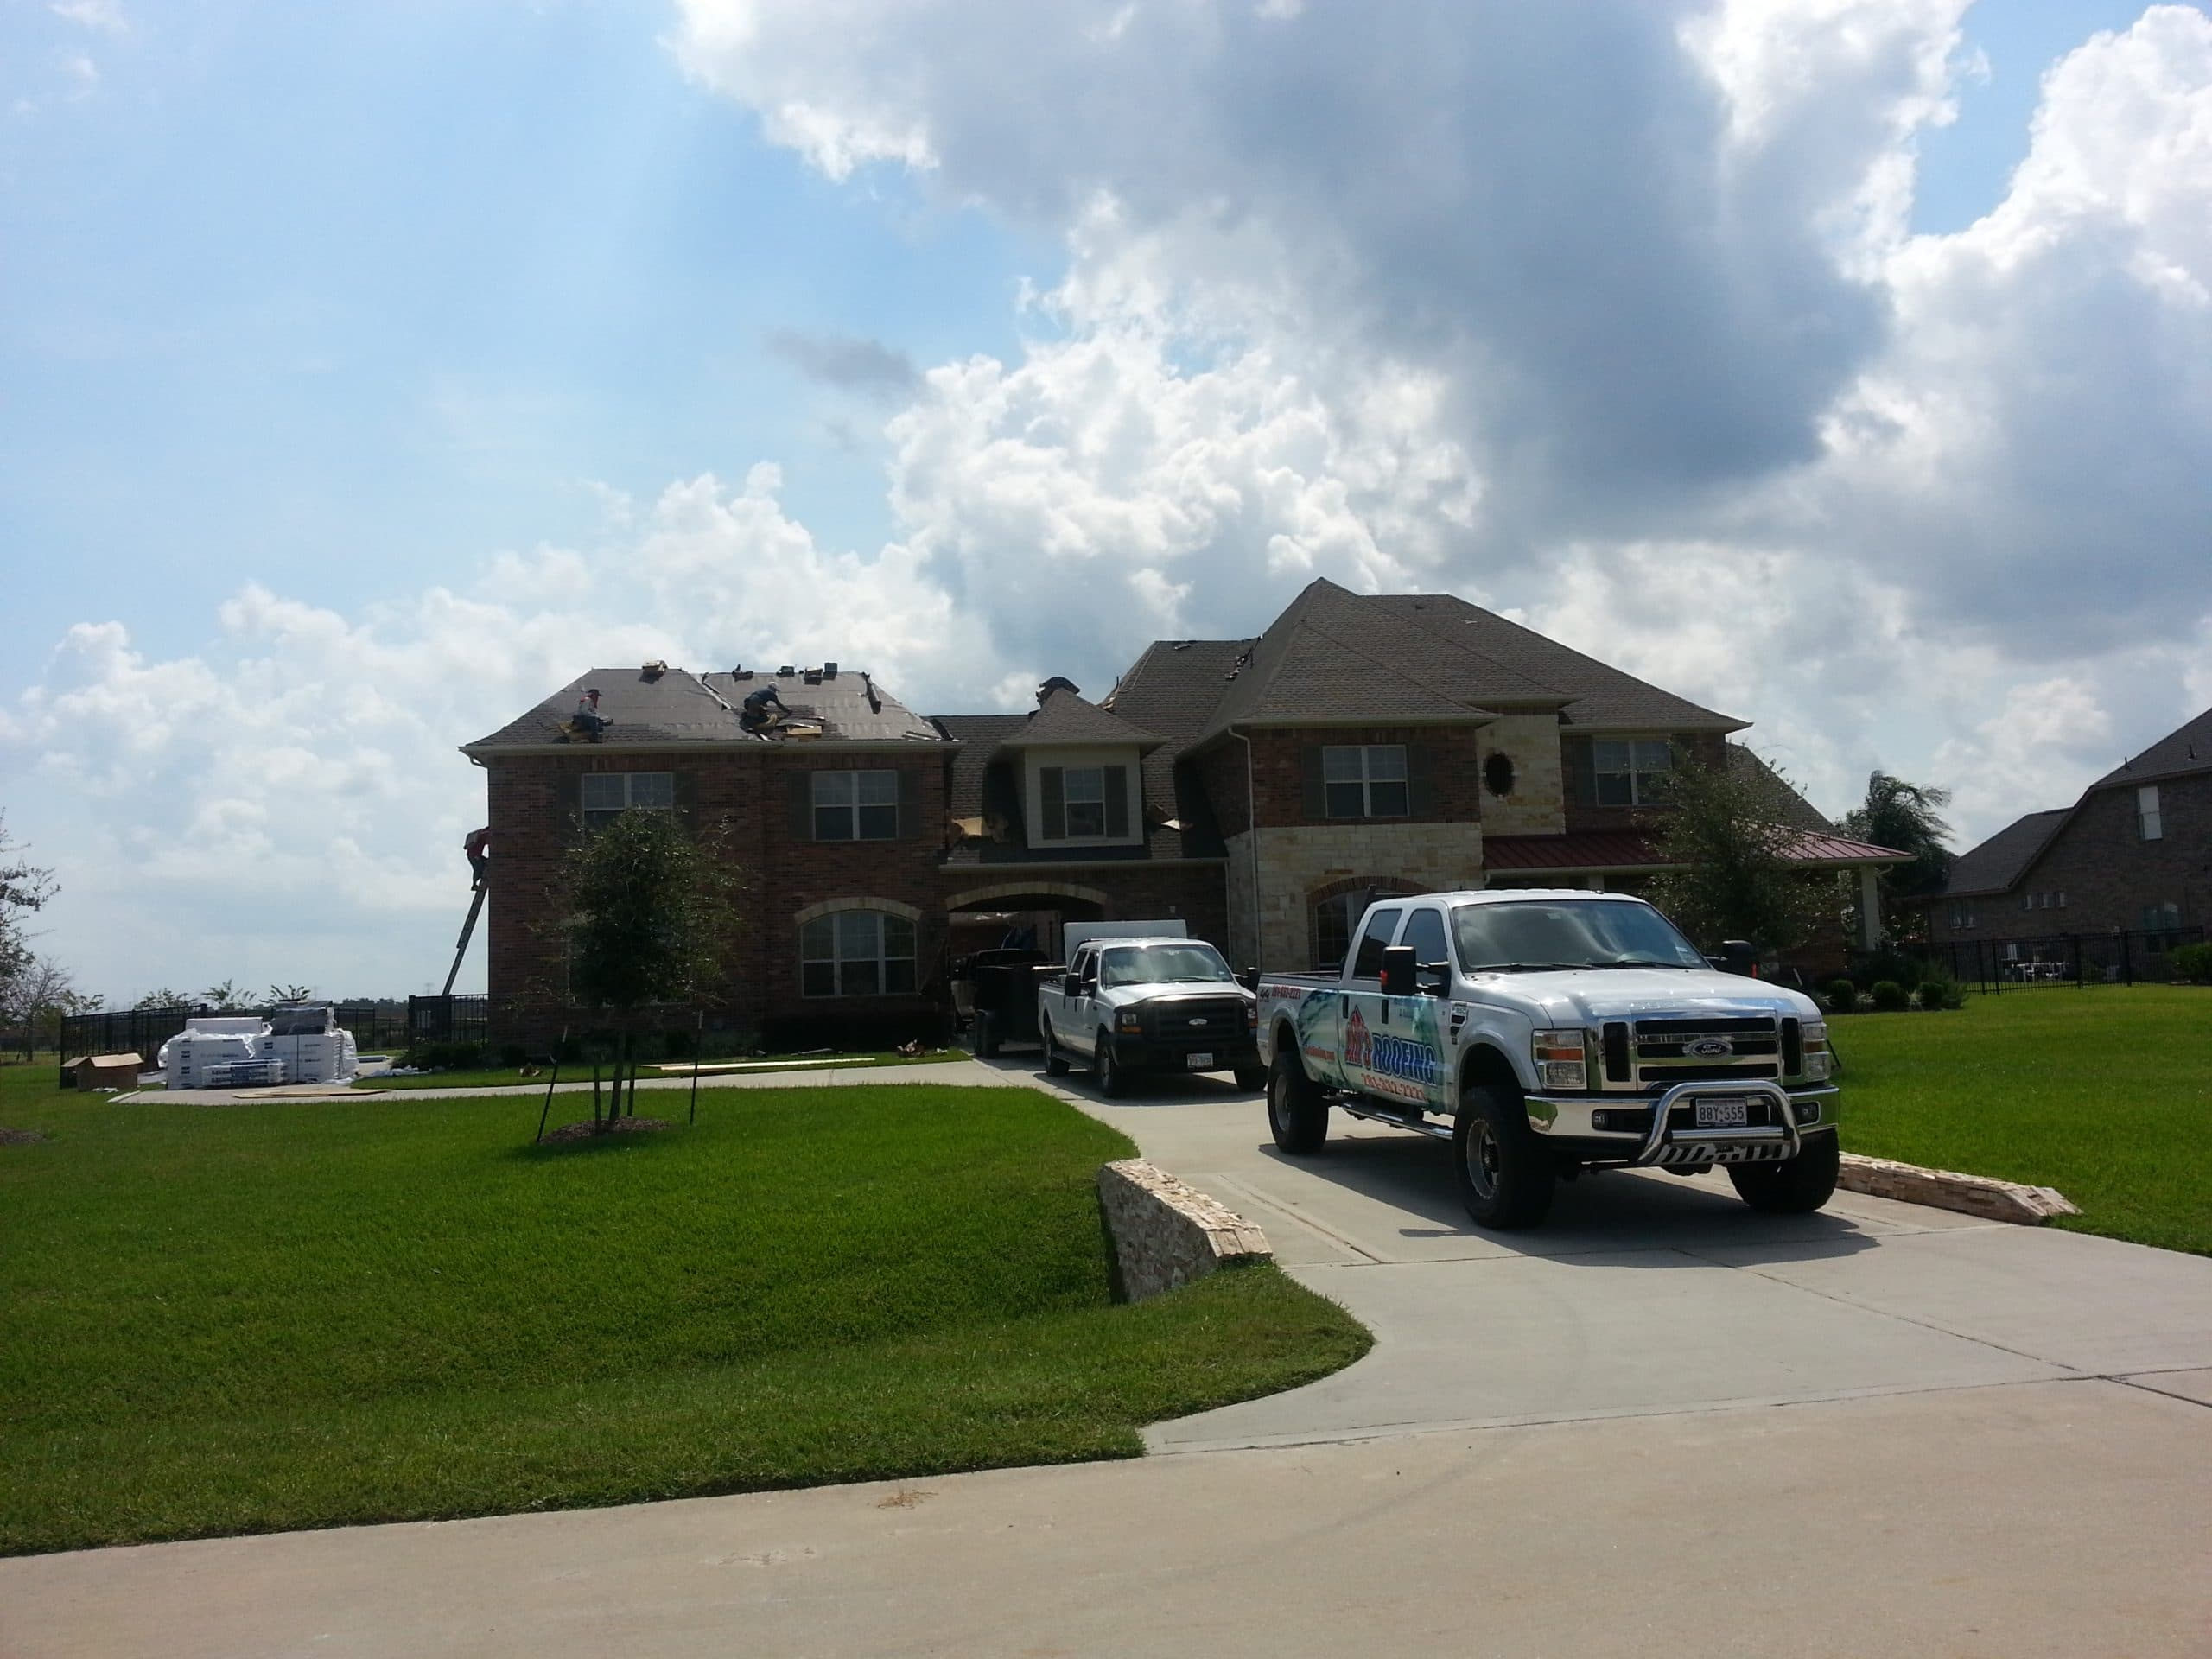 Art's Roofing in Action